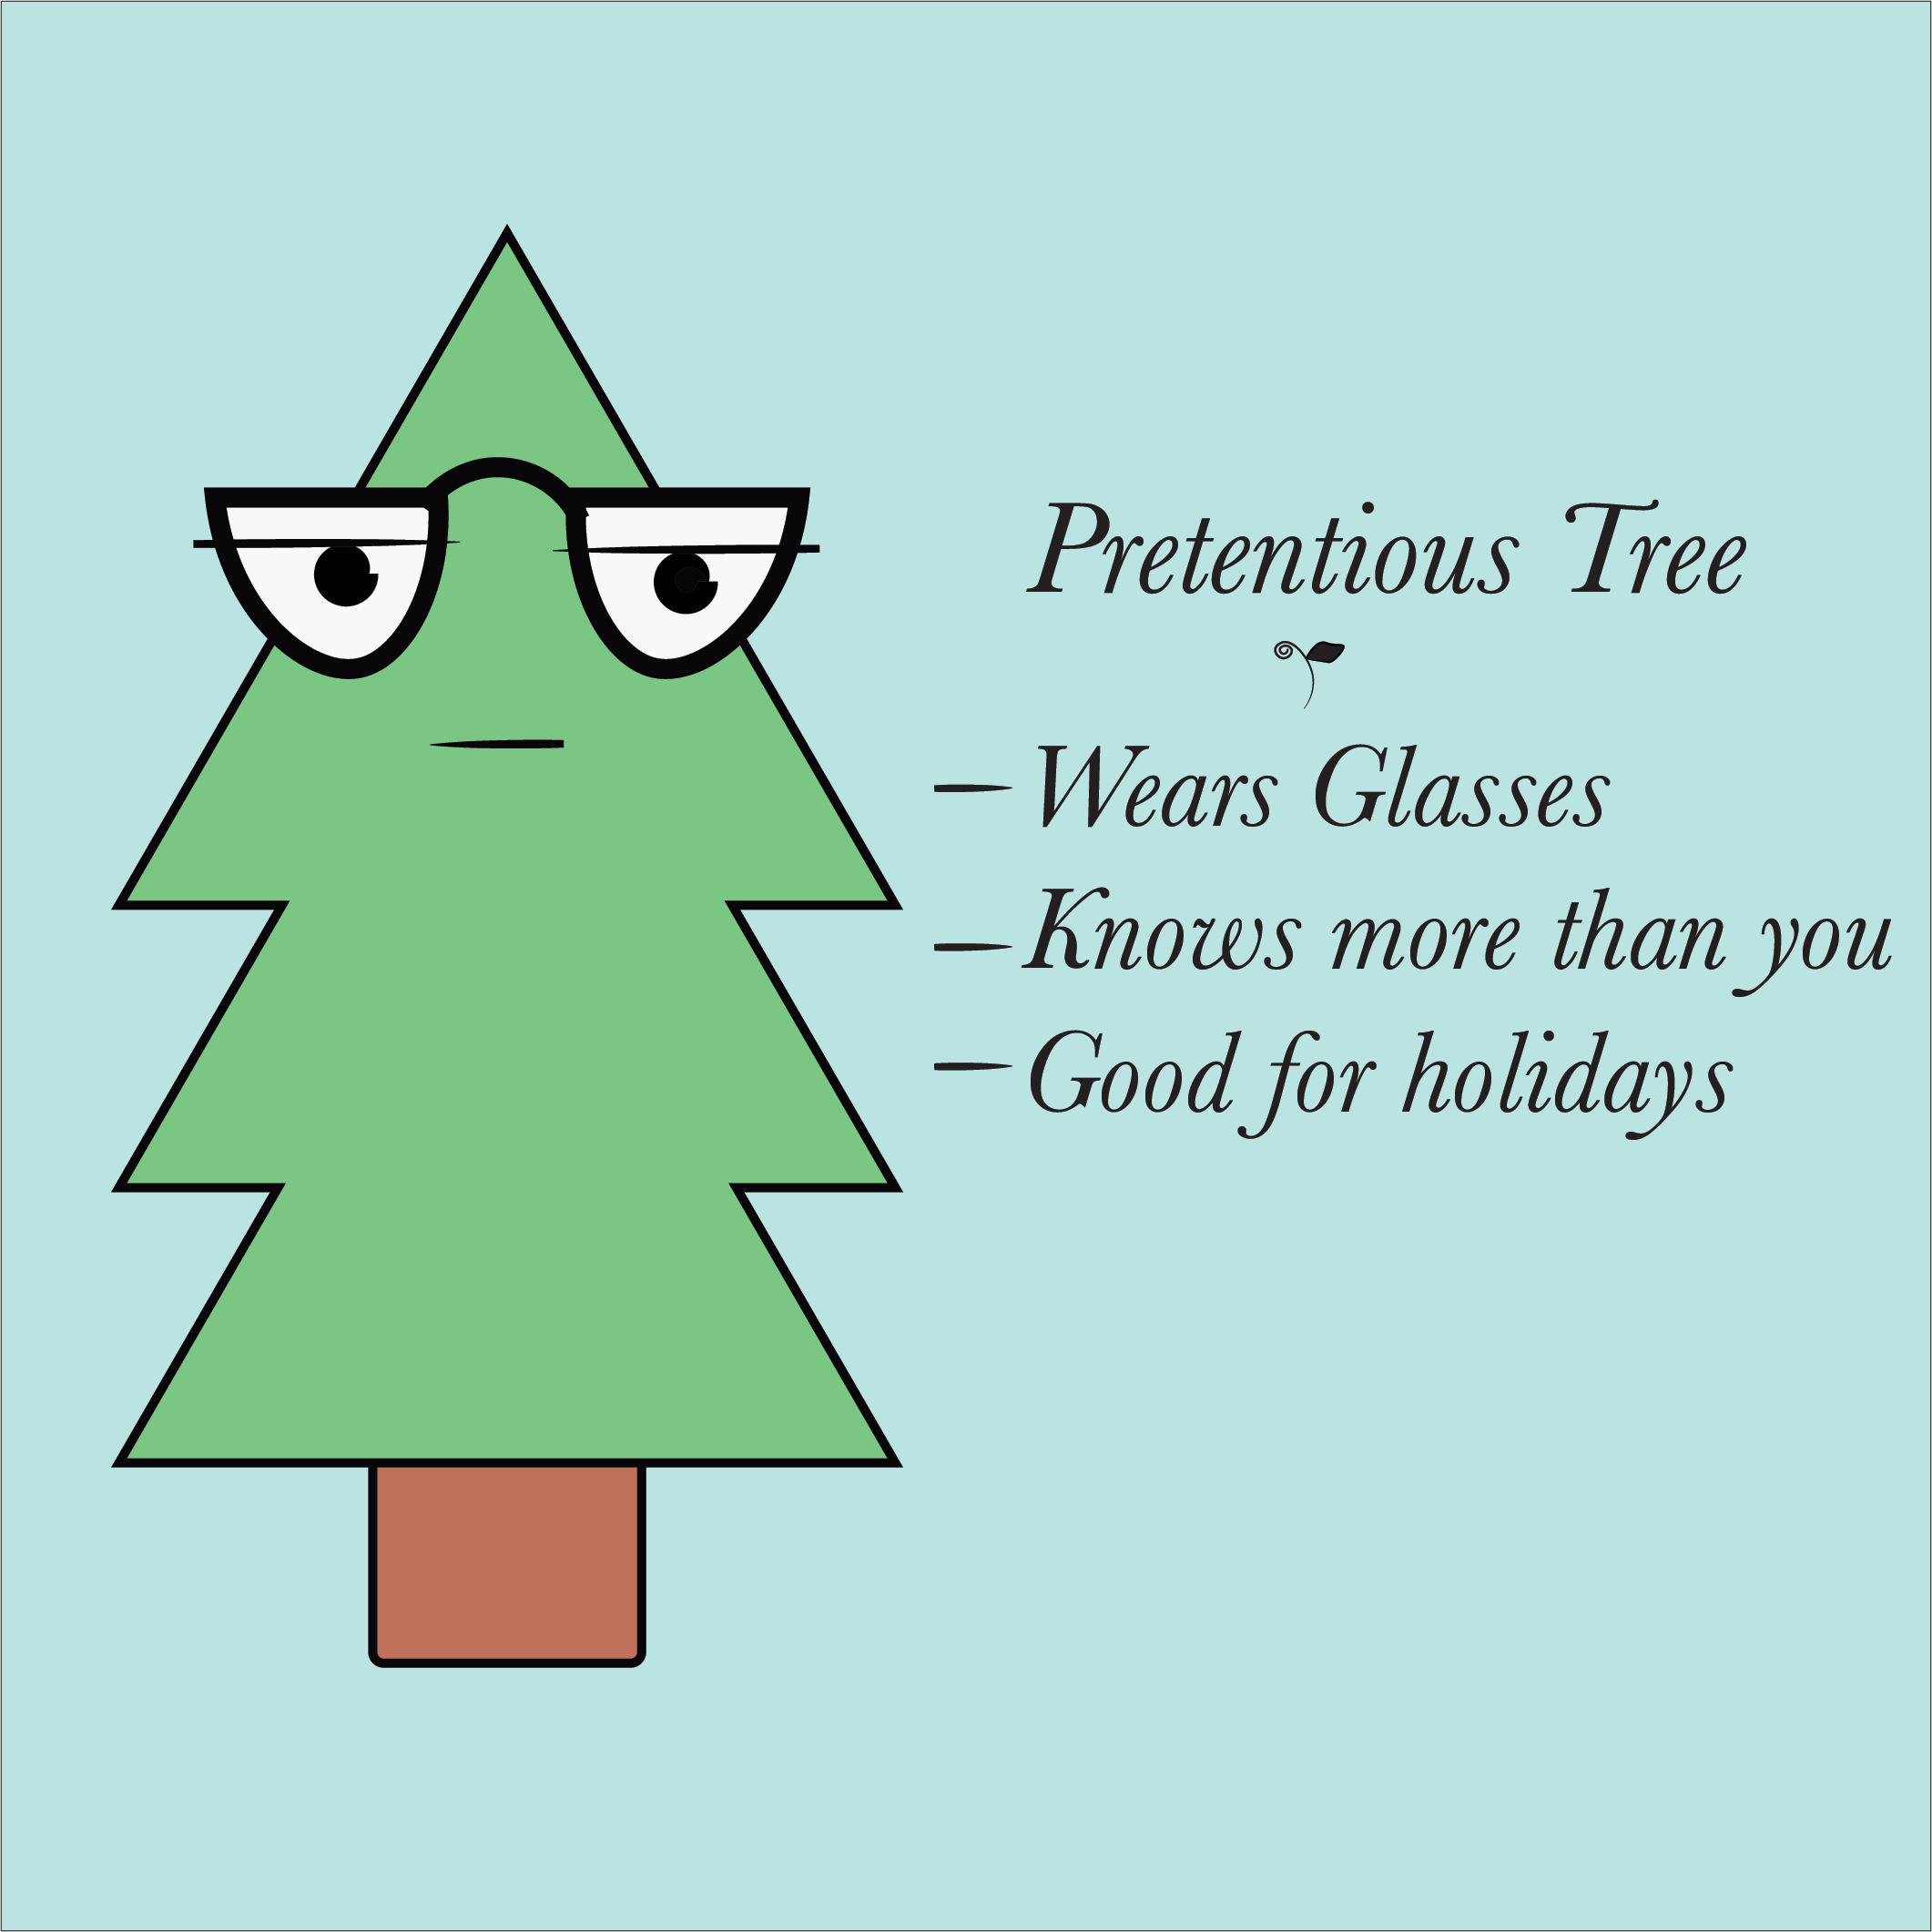 PretentiousTree.png